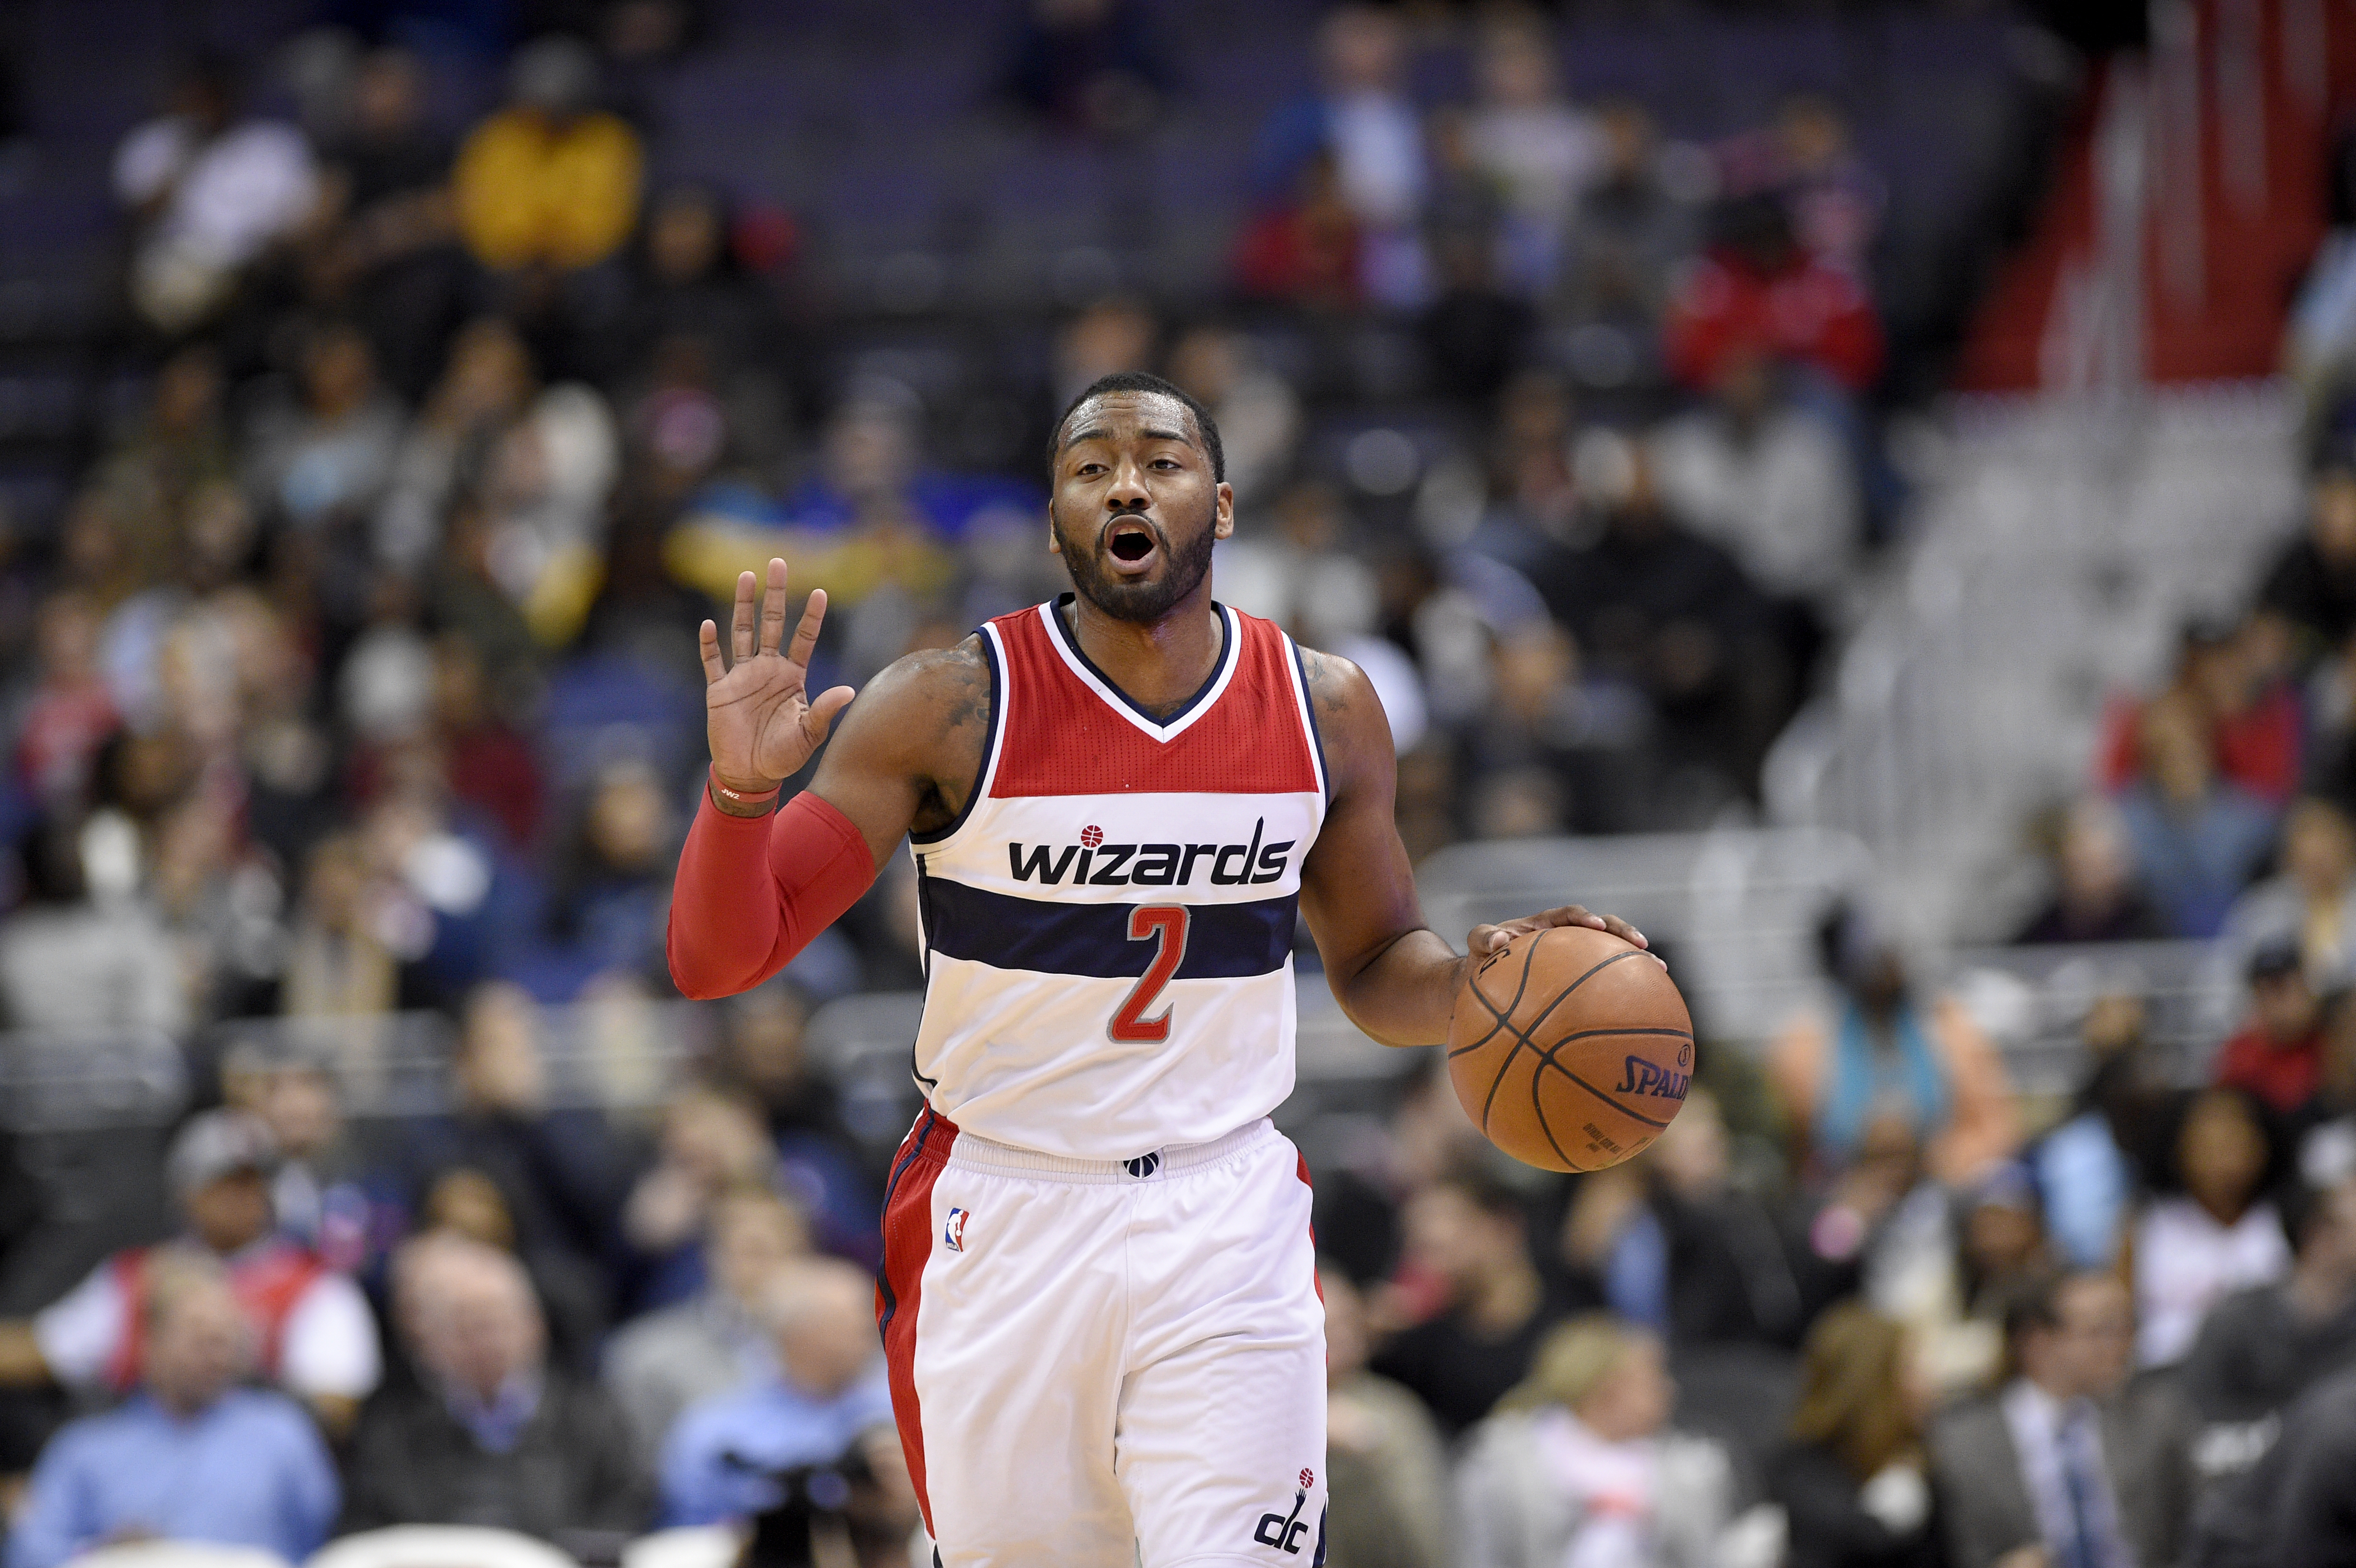 John Wall fined by NBA for altercation in Boston